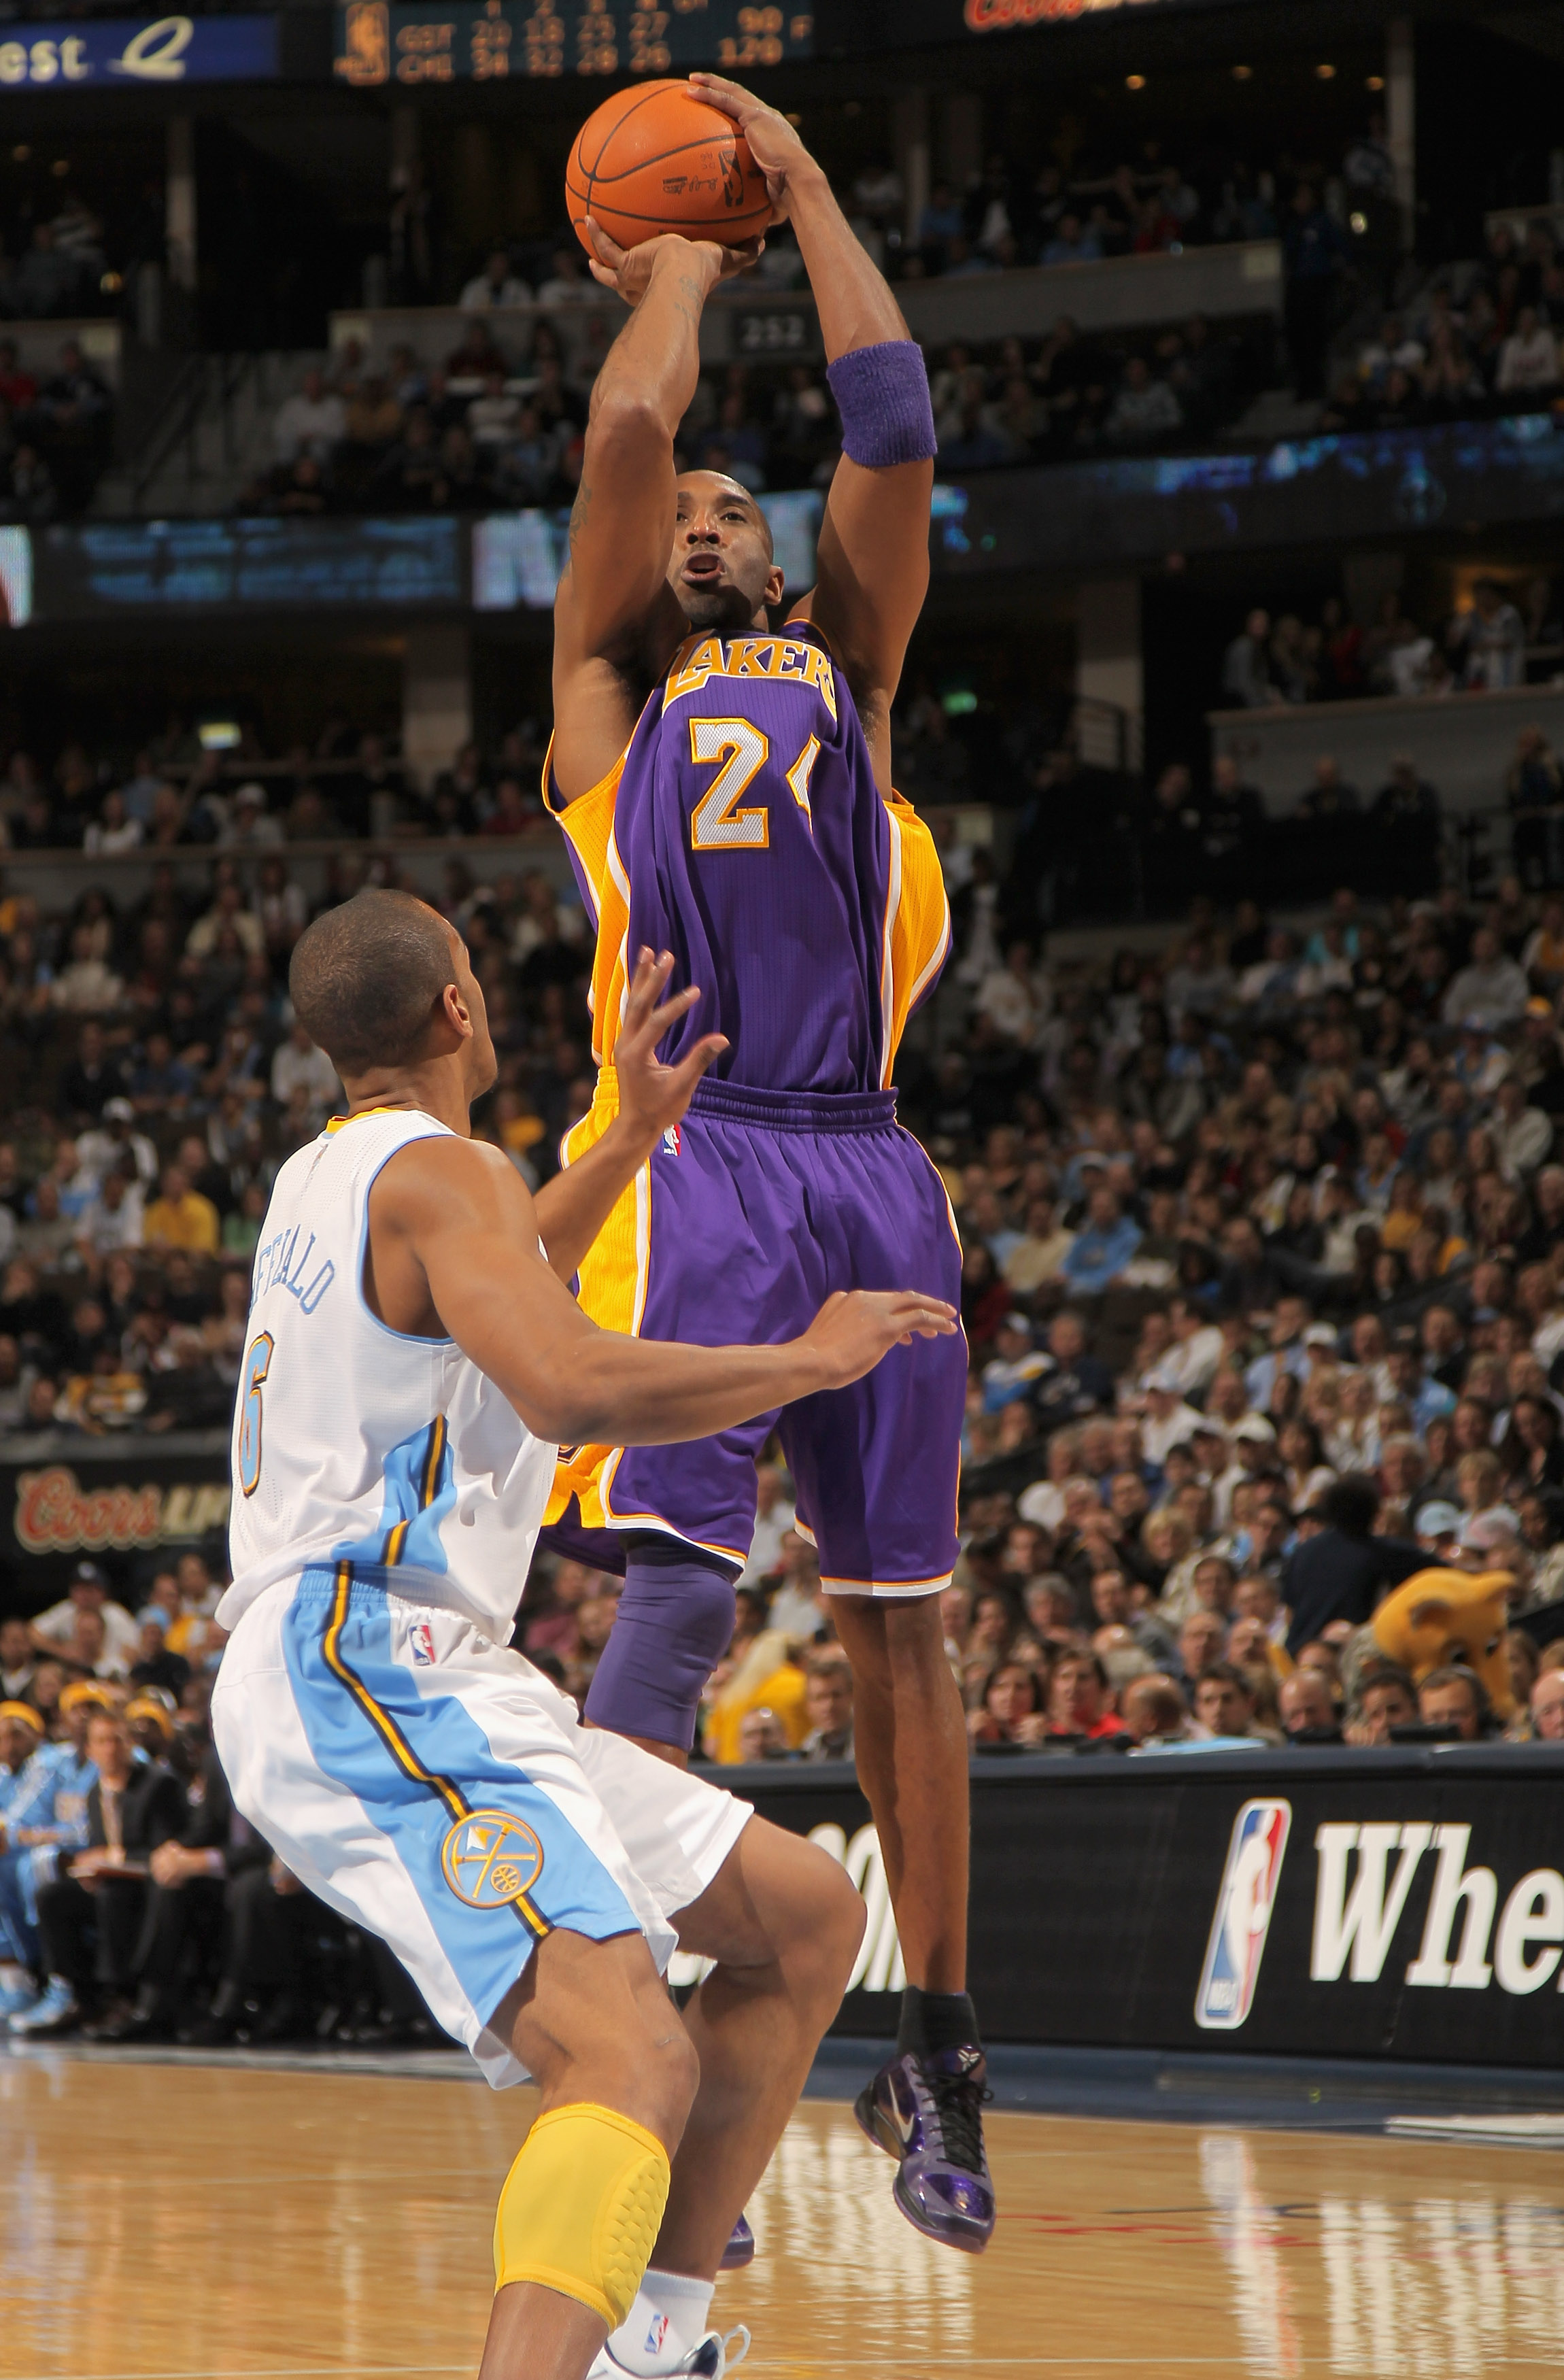 DENVER - NOVEMBER 11:  Kobe Bryant #24 of the Los Angeles Lakers takes a shot over Arron Afflalo #6 of the Denver Nuggets at the Pepsi Center on November 11, 2010 in Denver, Colorado. The Nuggets defeated the Lakers 118-112.  NOTE TO USER: User expressly